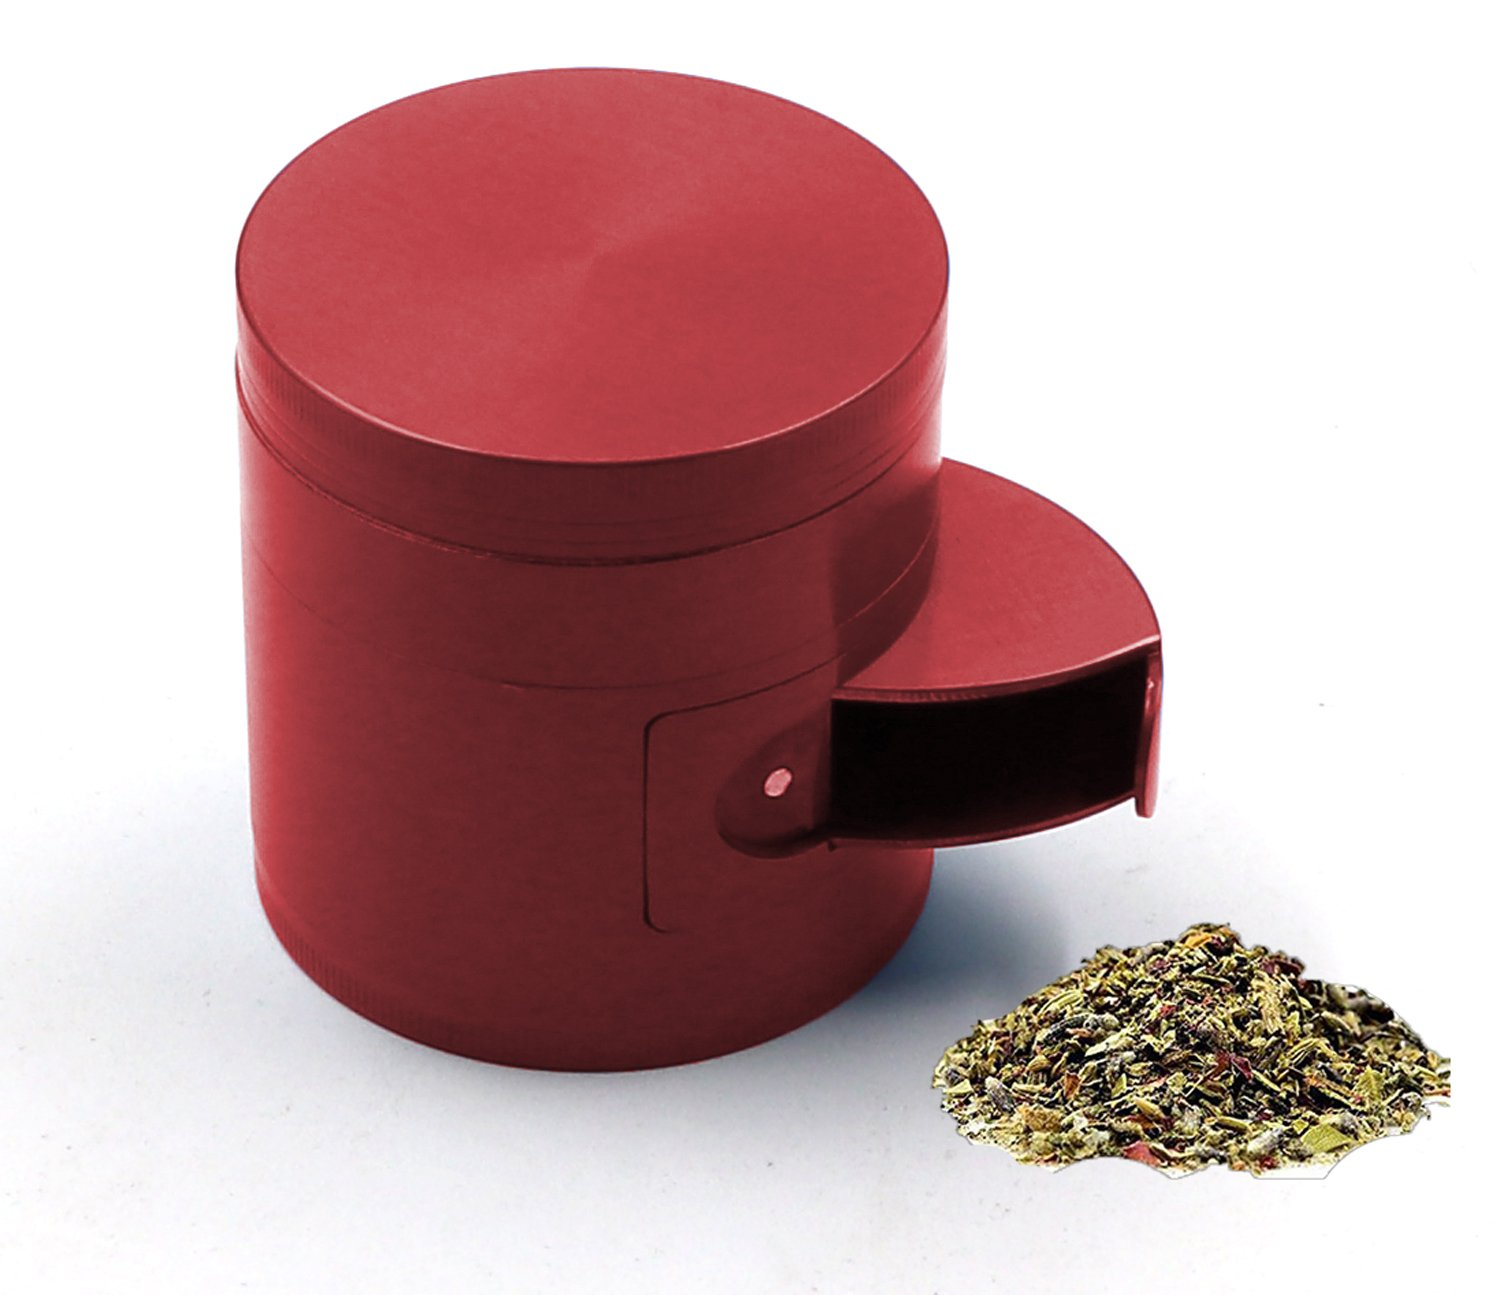 AIMAKE New Design Herb Weed& Spice 4 Piece Large 2.5 Inches Mills Grinder with Pollen Catcher(Black) COMINHKPR146643